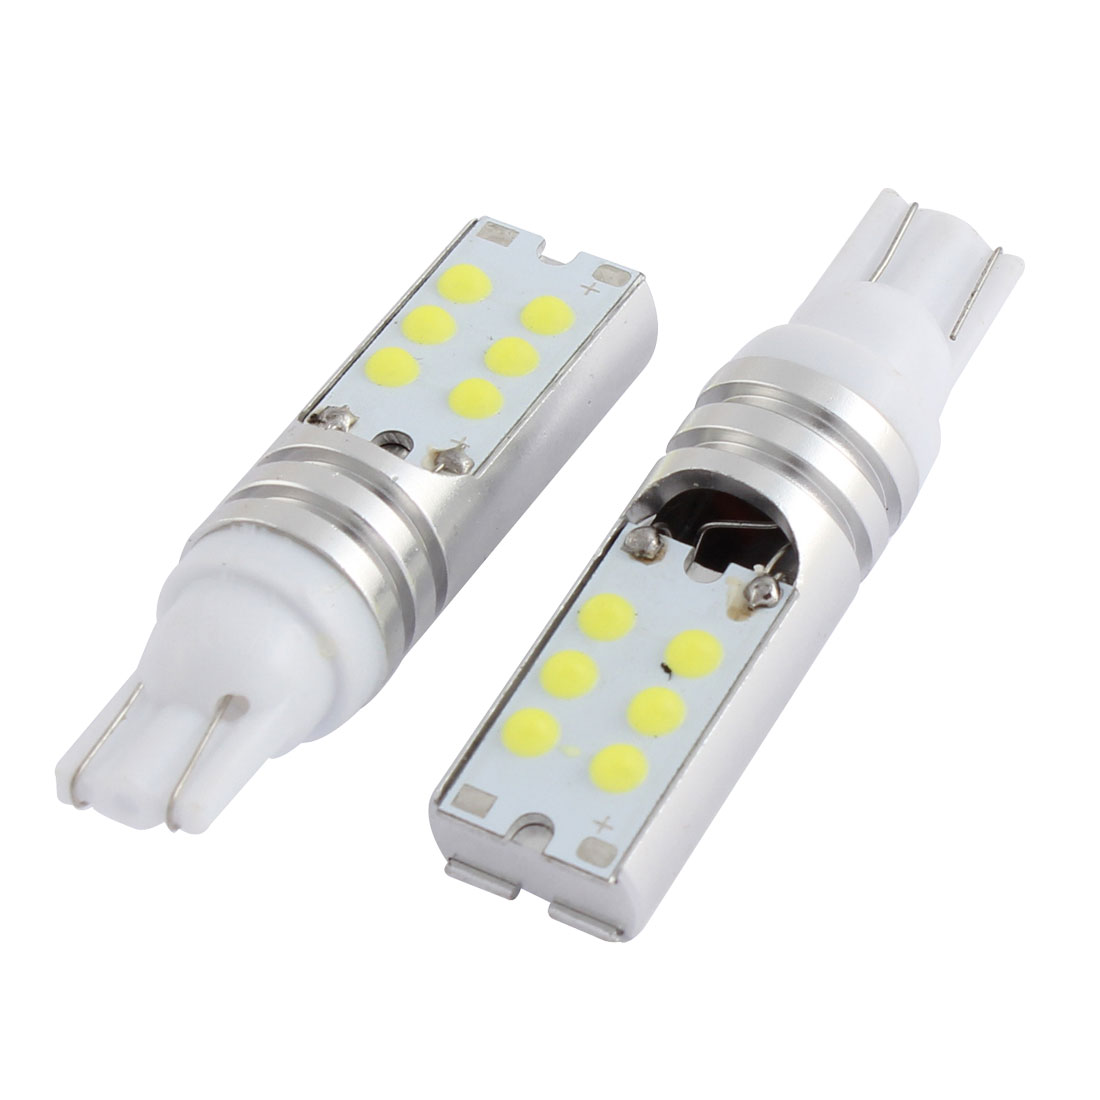 2 Pcs T10 921 W5W White COB 12-LEDs Side Light Wedge Lamp Bulb DC 12V Interior